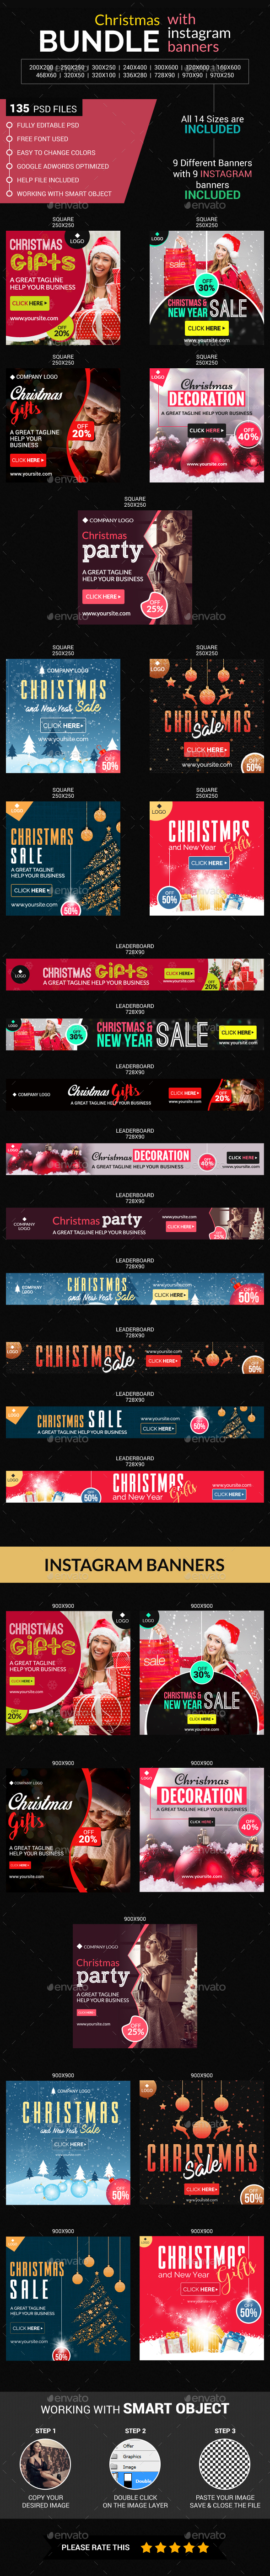 Christmas Big  Banner Bundle (09 sets) with Instagram Templates - Banners & Ads Web Elements